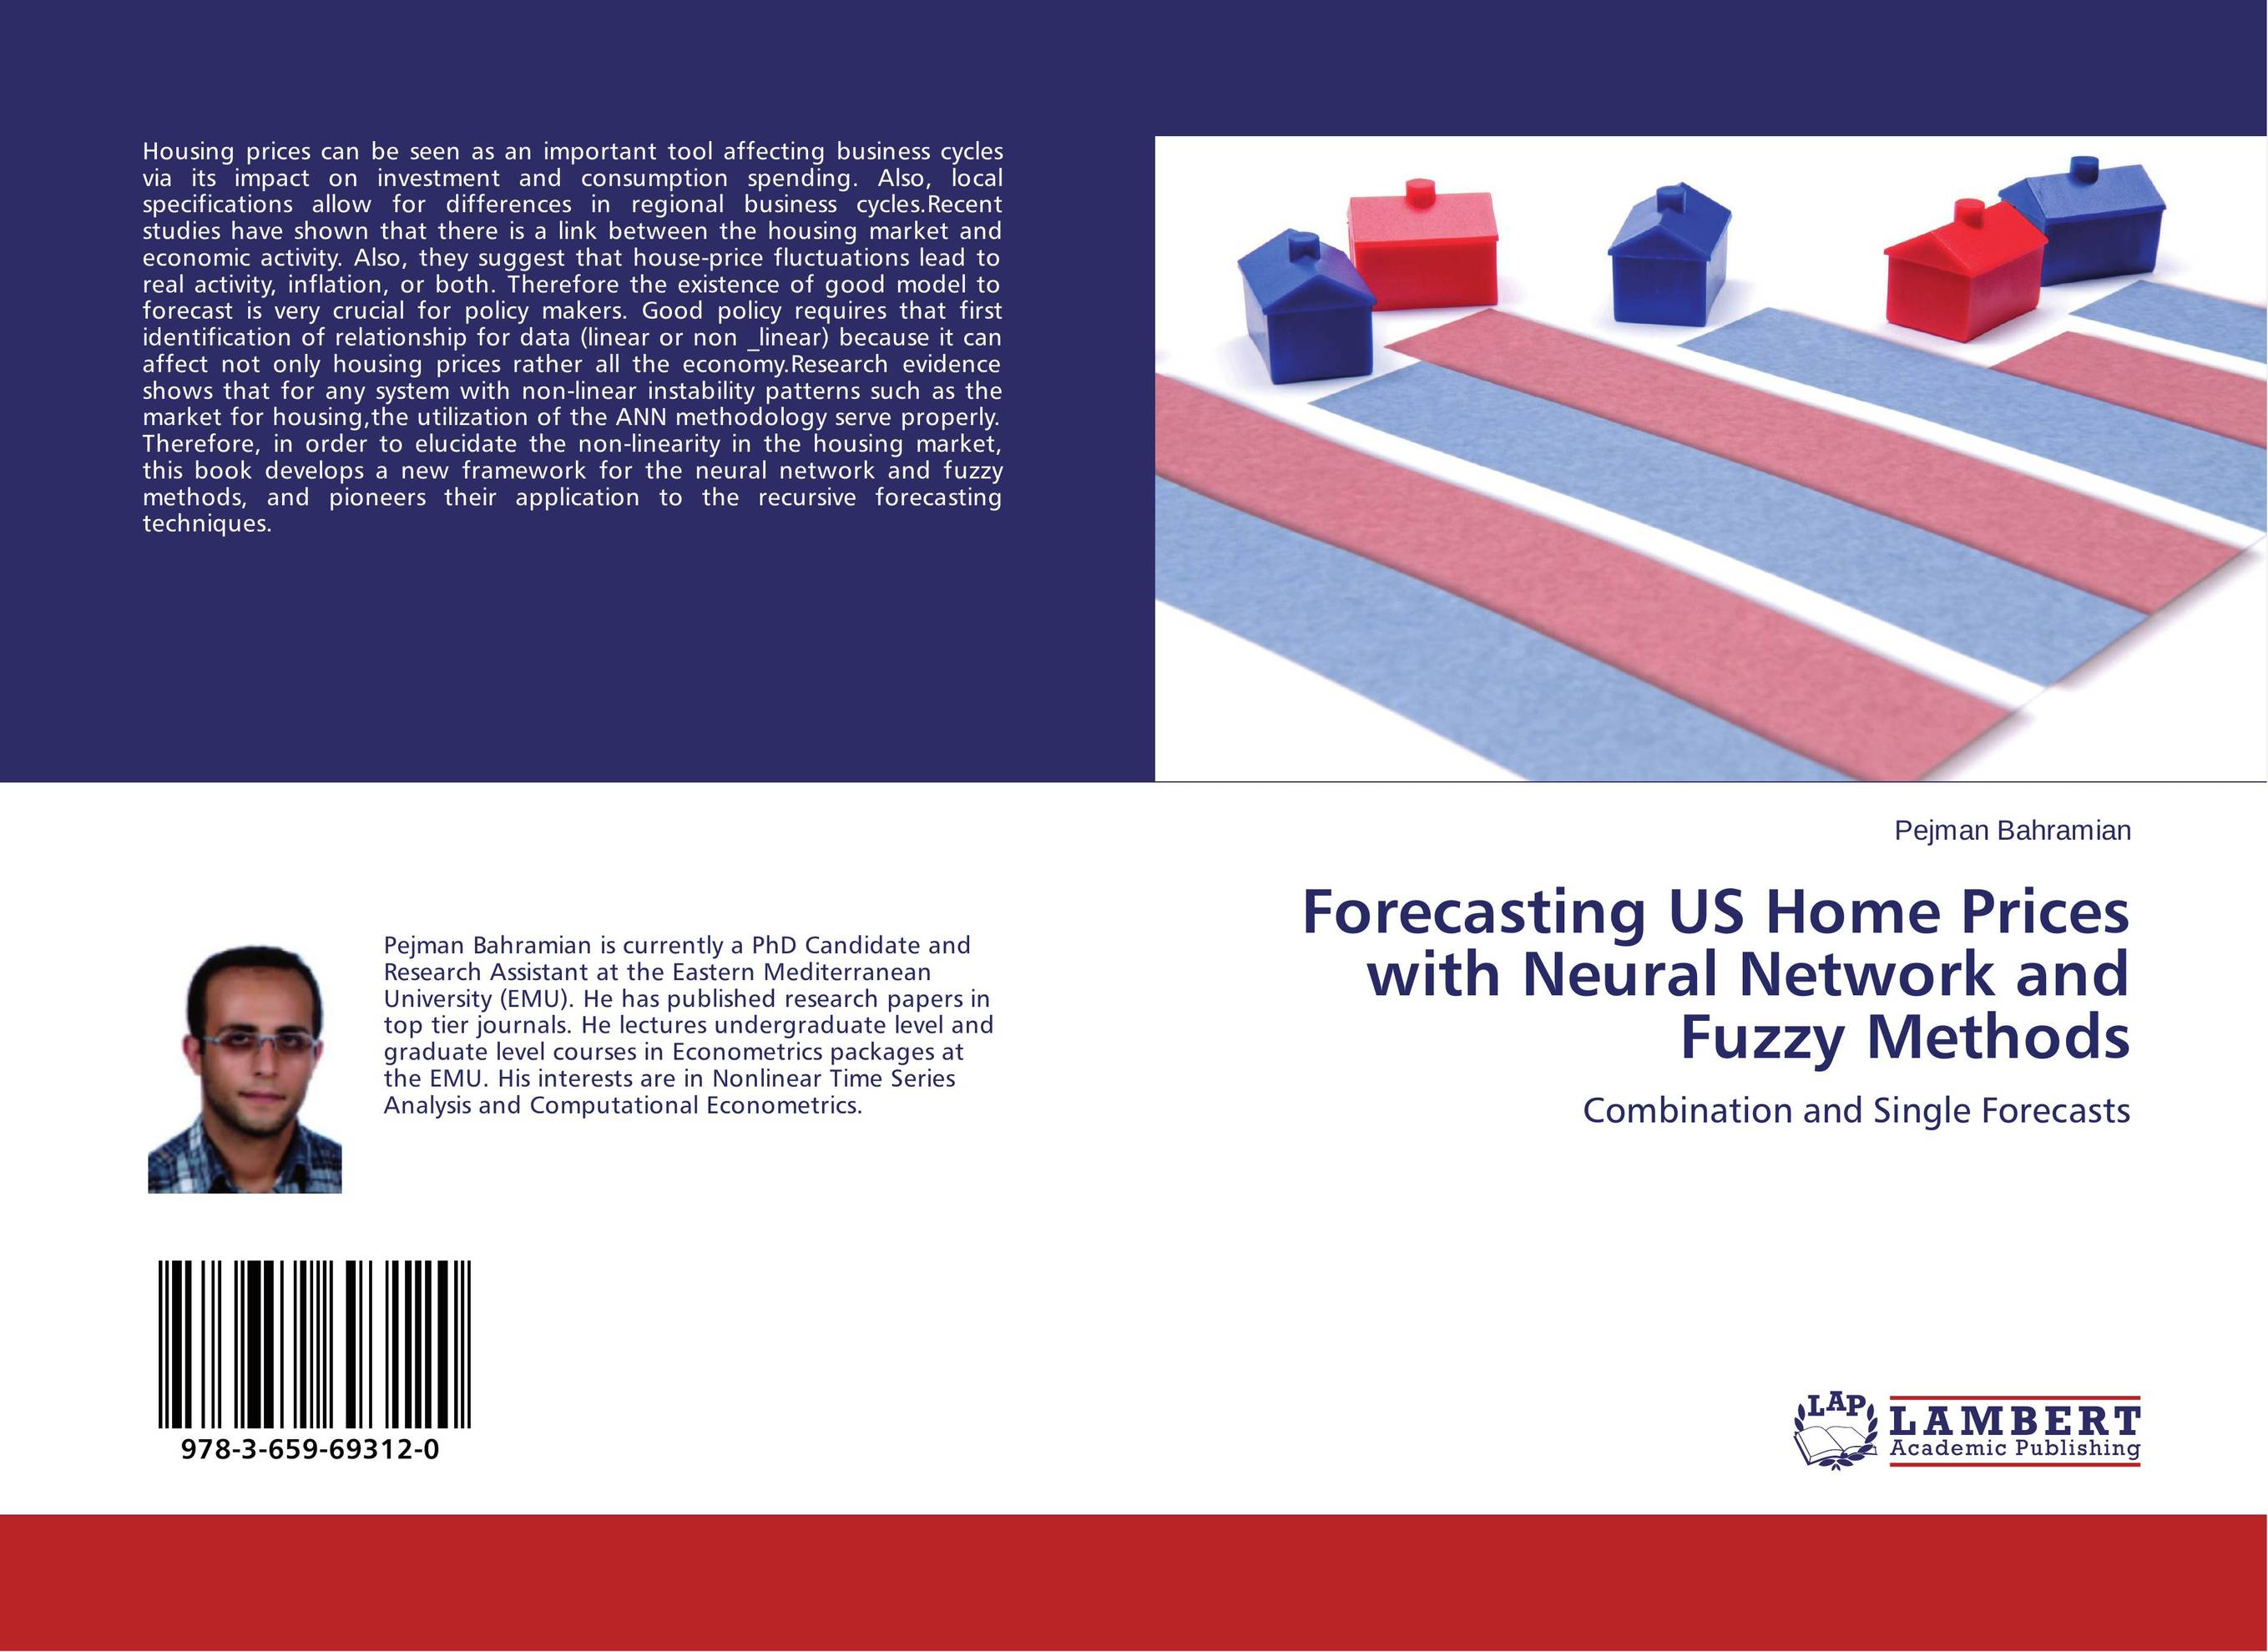 Forecasting US Home Prices with Neural Network and Fuzzy Methods aygun nusrat alasgarova financial risk forecasting using neuro fuzzy approach